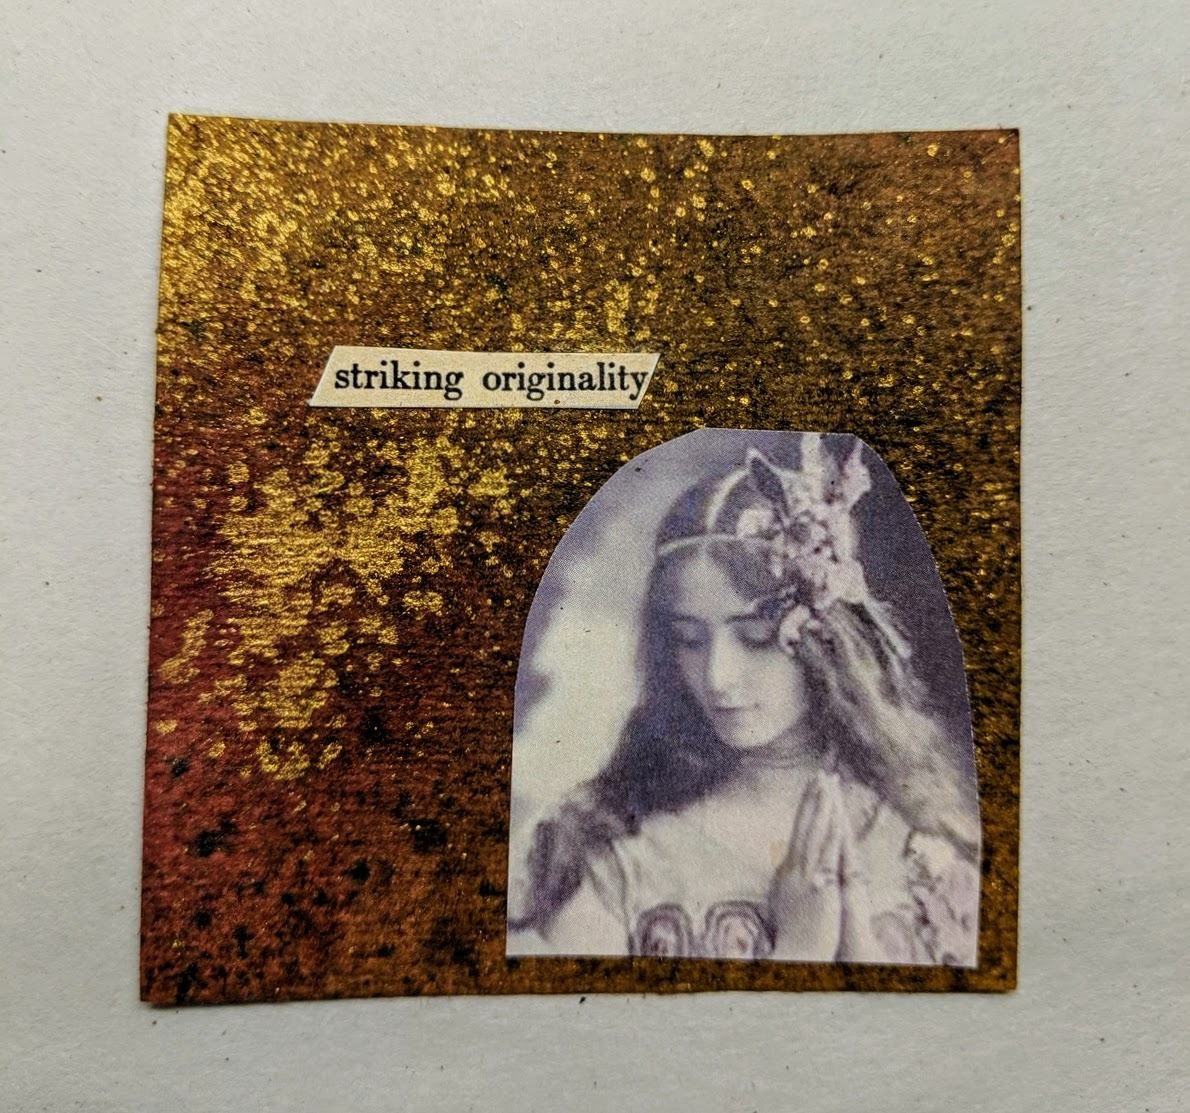 222: 3x3 card with dyes & collage